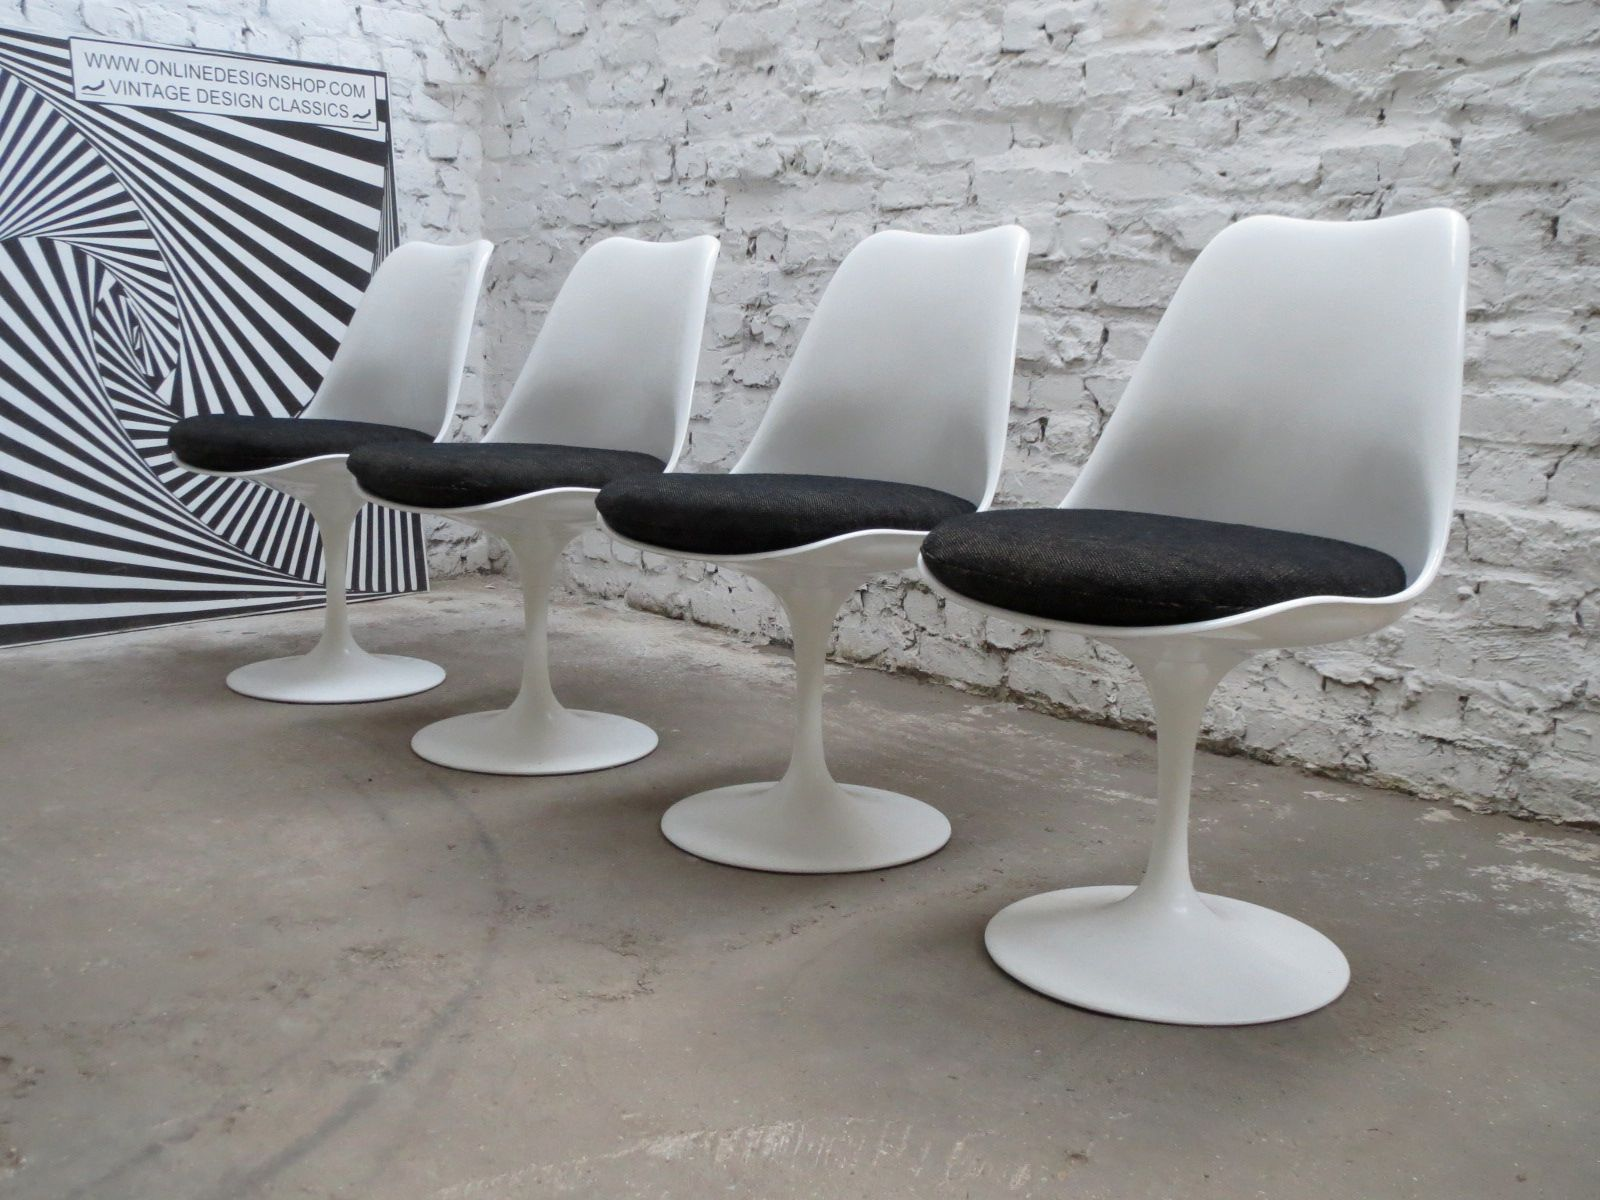 Non swivel tulip chairs by eero saarinen for knoll international 1980s set of 4 for sale at pamono - Tulip chairs for sale ...